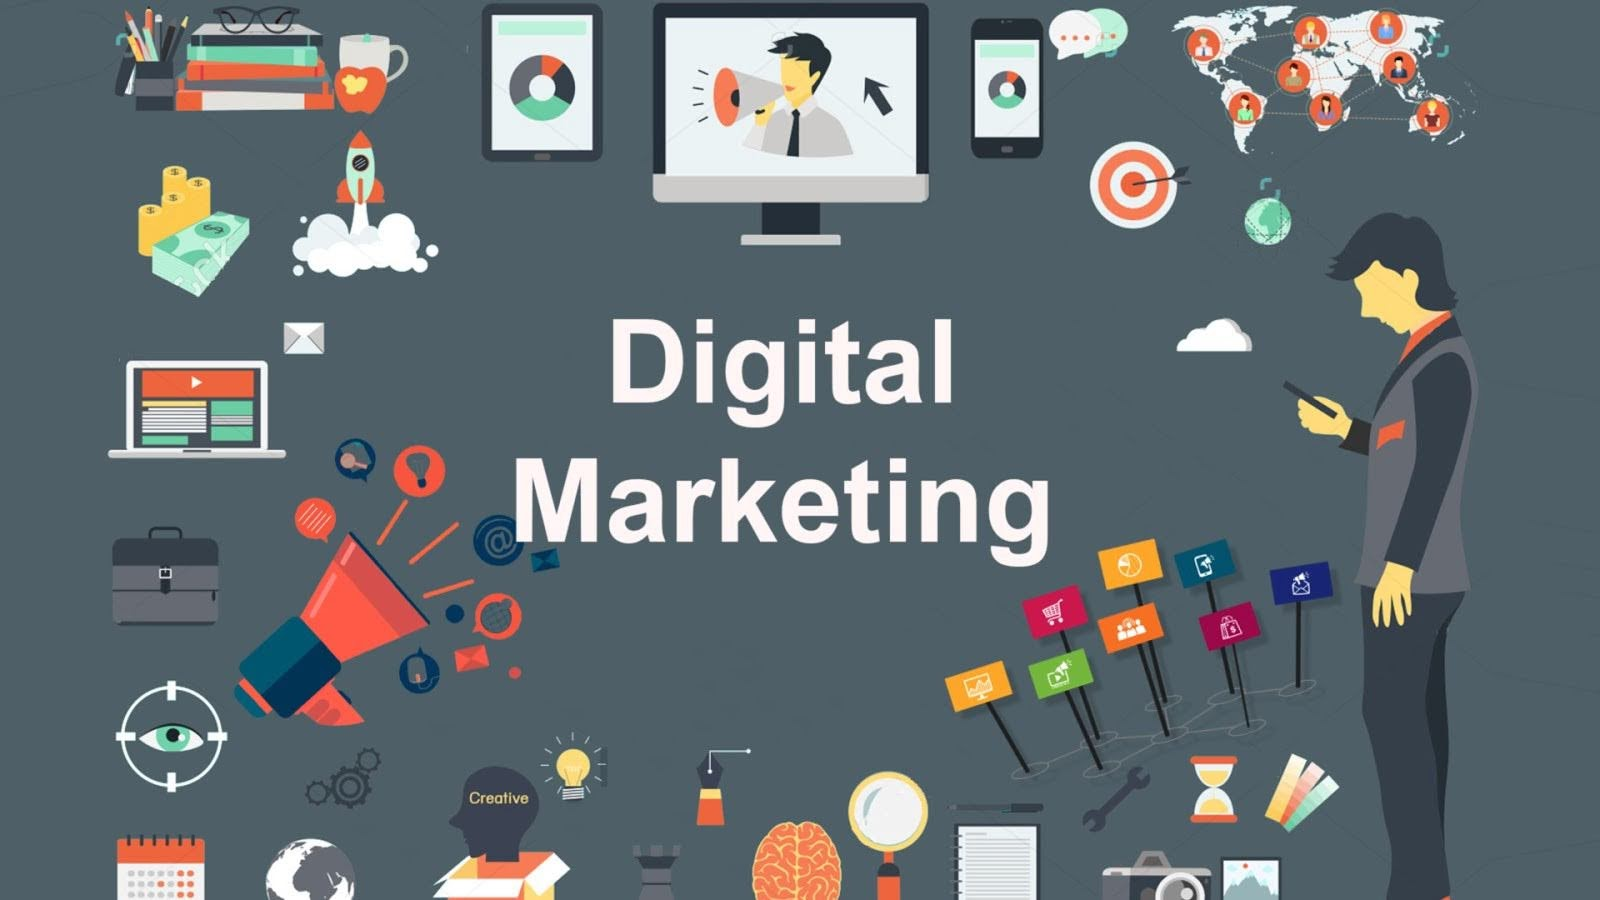 What to Expect from The Digital Marketing Industry in 2021